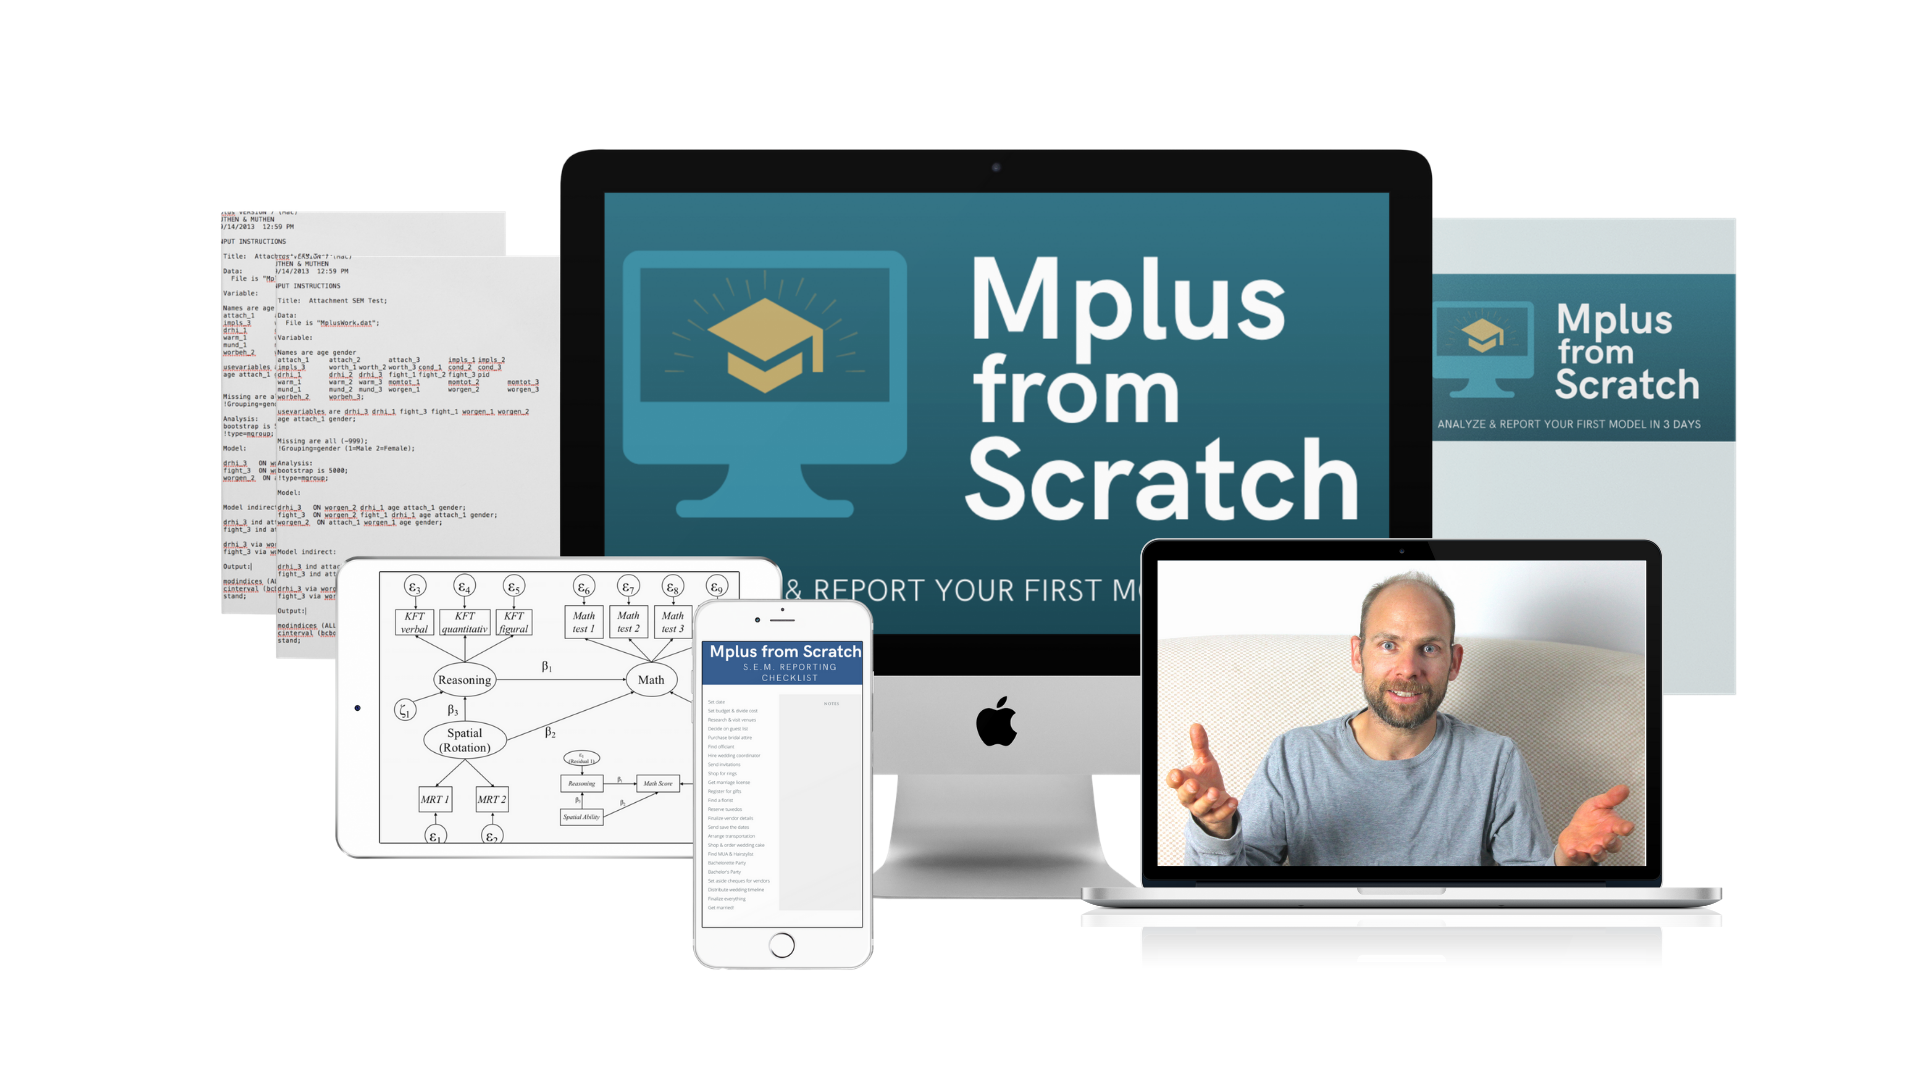 Photo of Mplus from Scratch on different devices